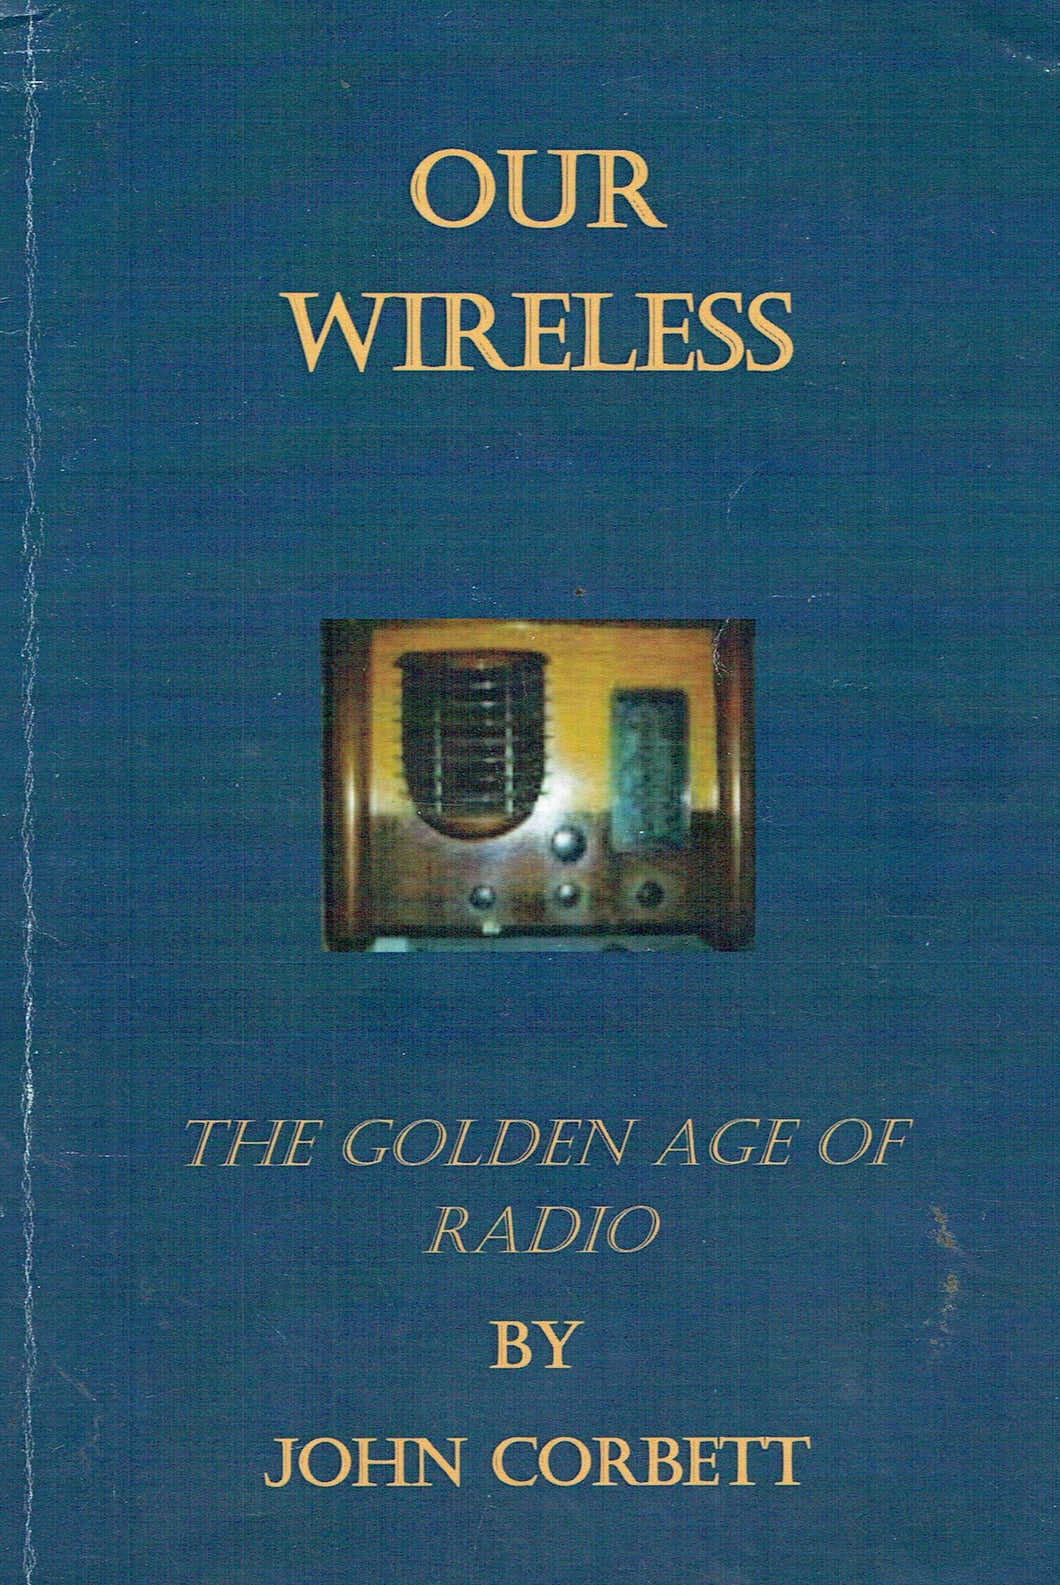 Our Wireless: The Golden Age of Radio